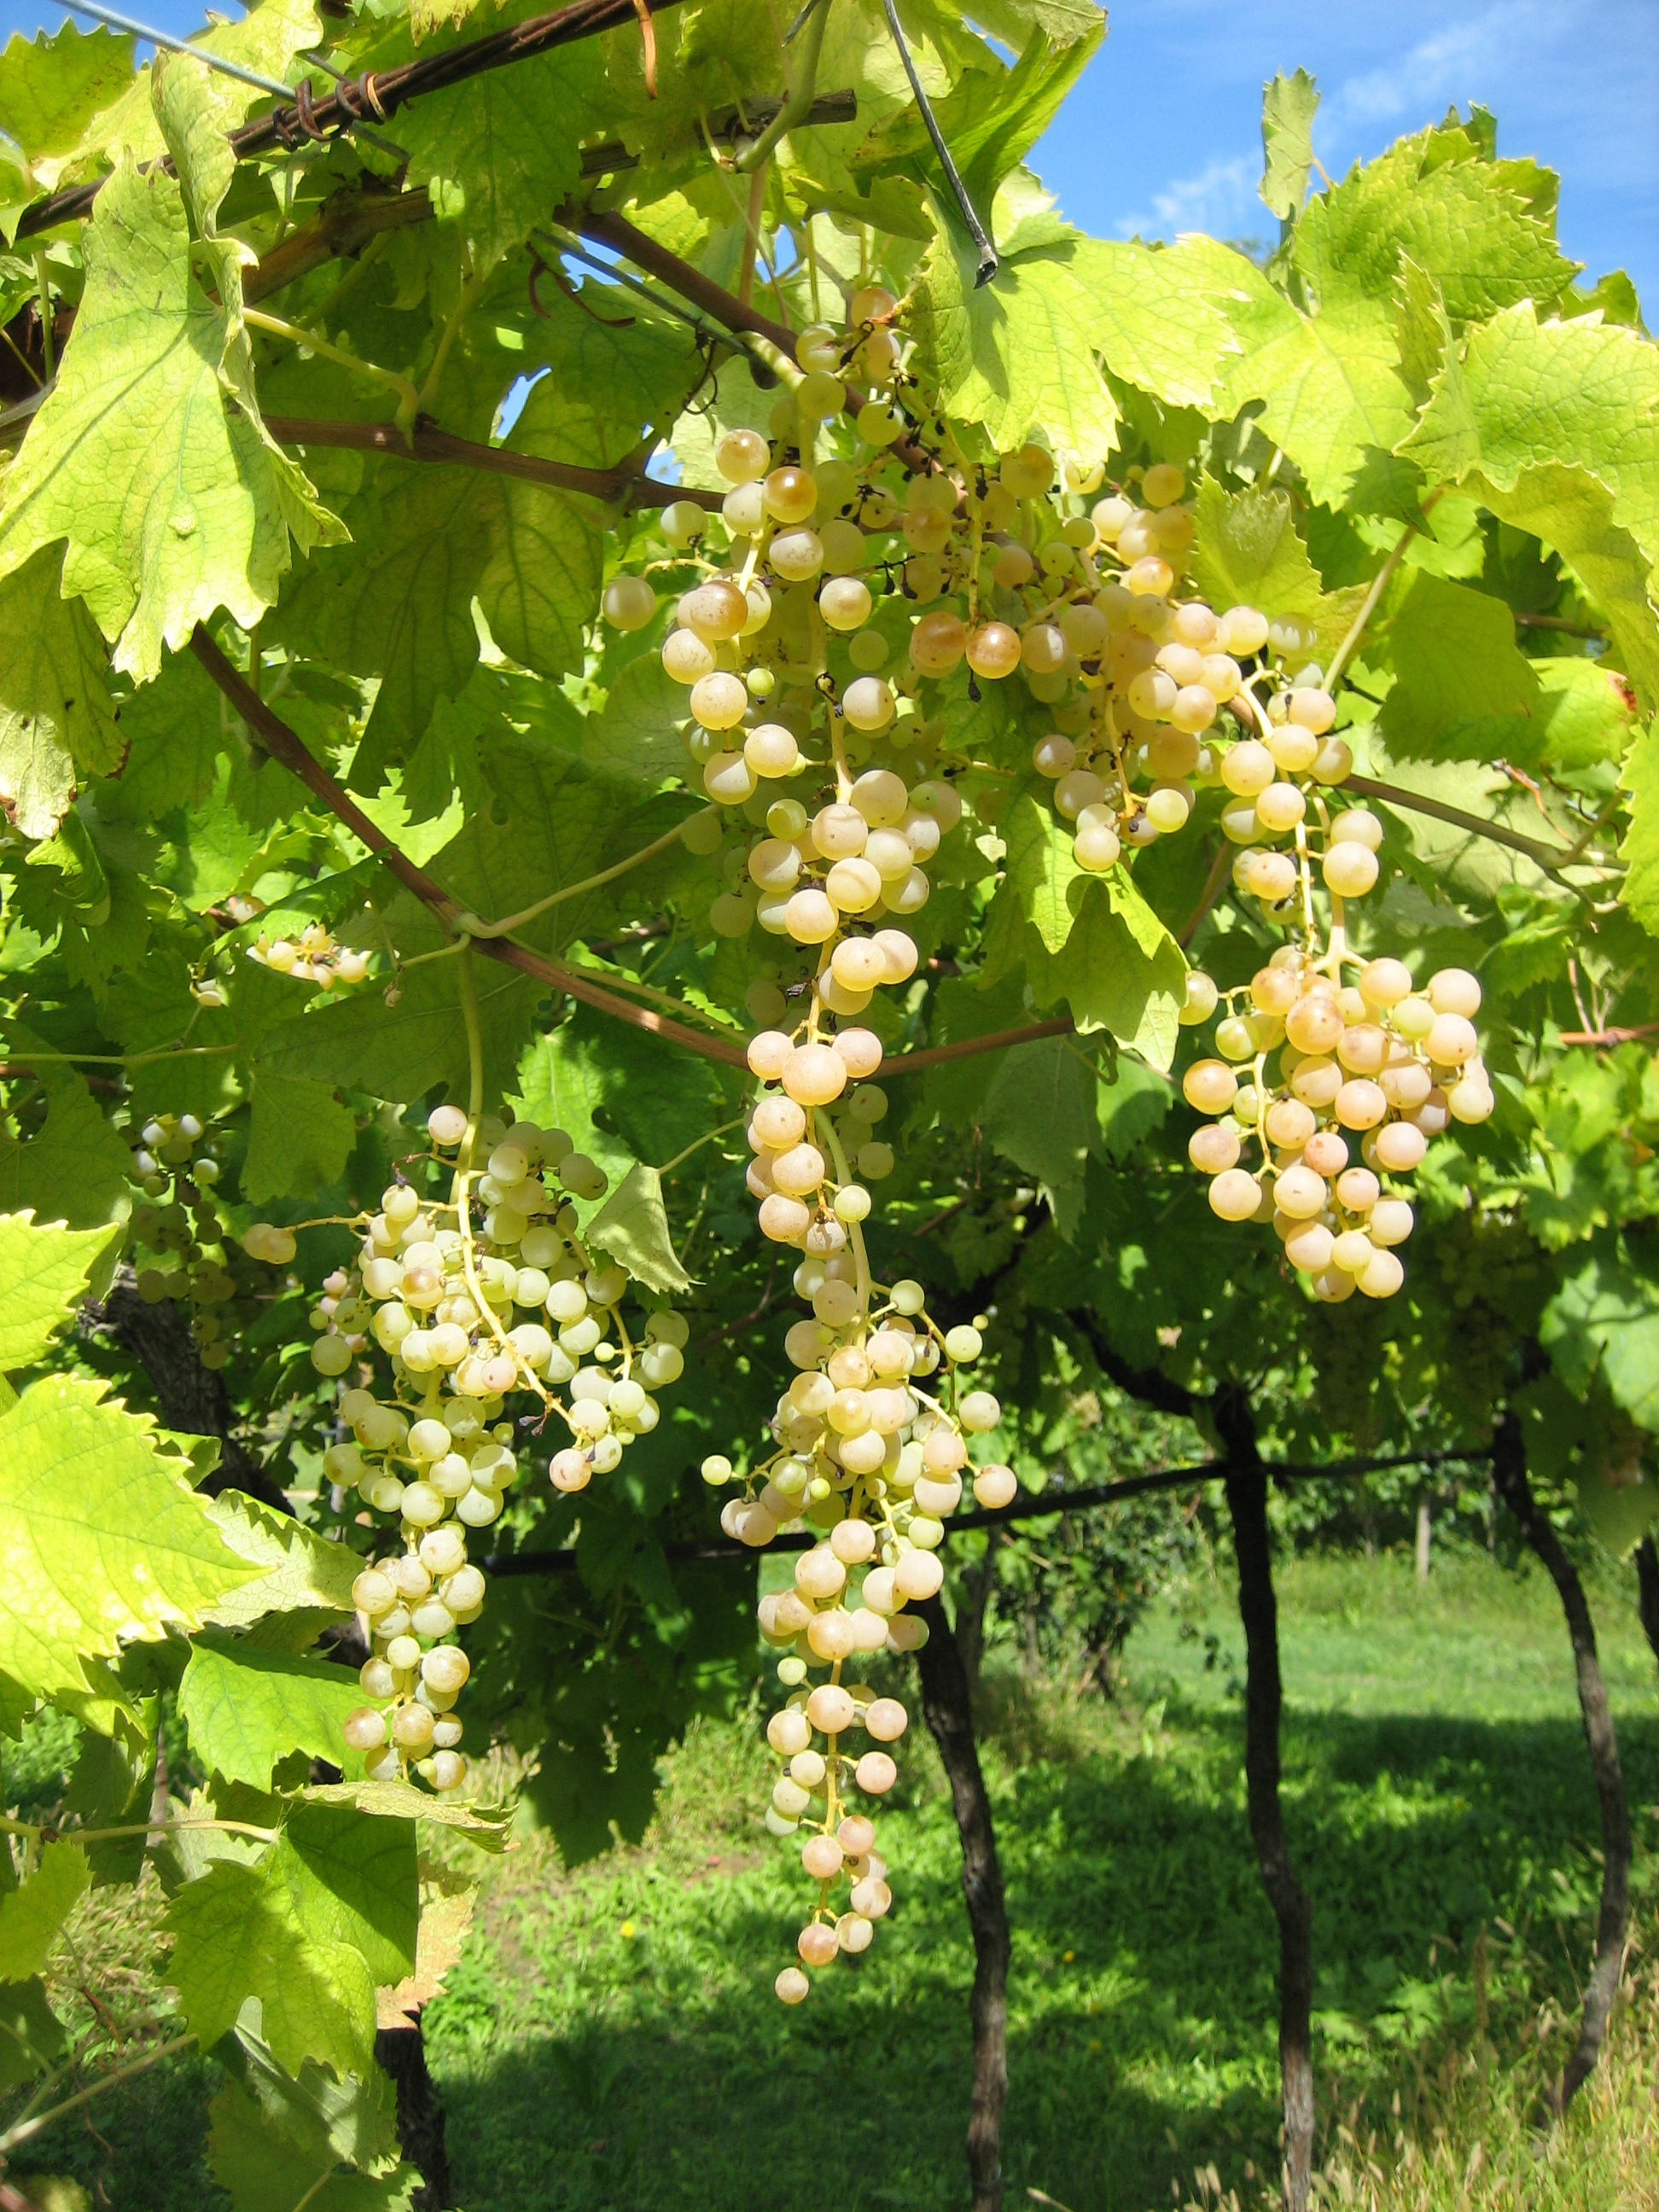 Garganega grapes - the main variety in Soave